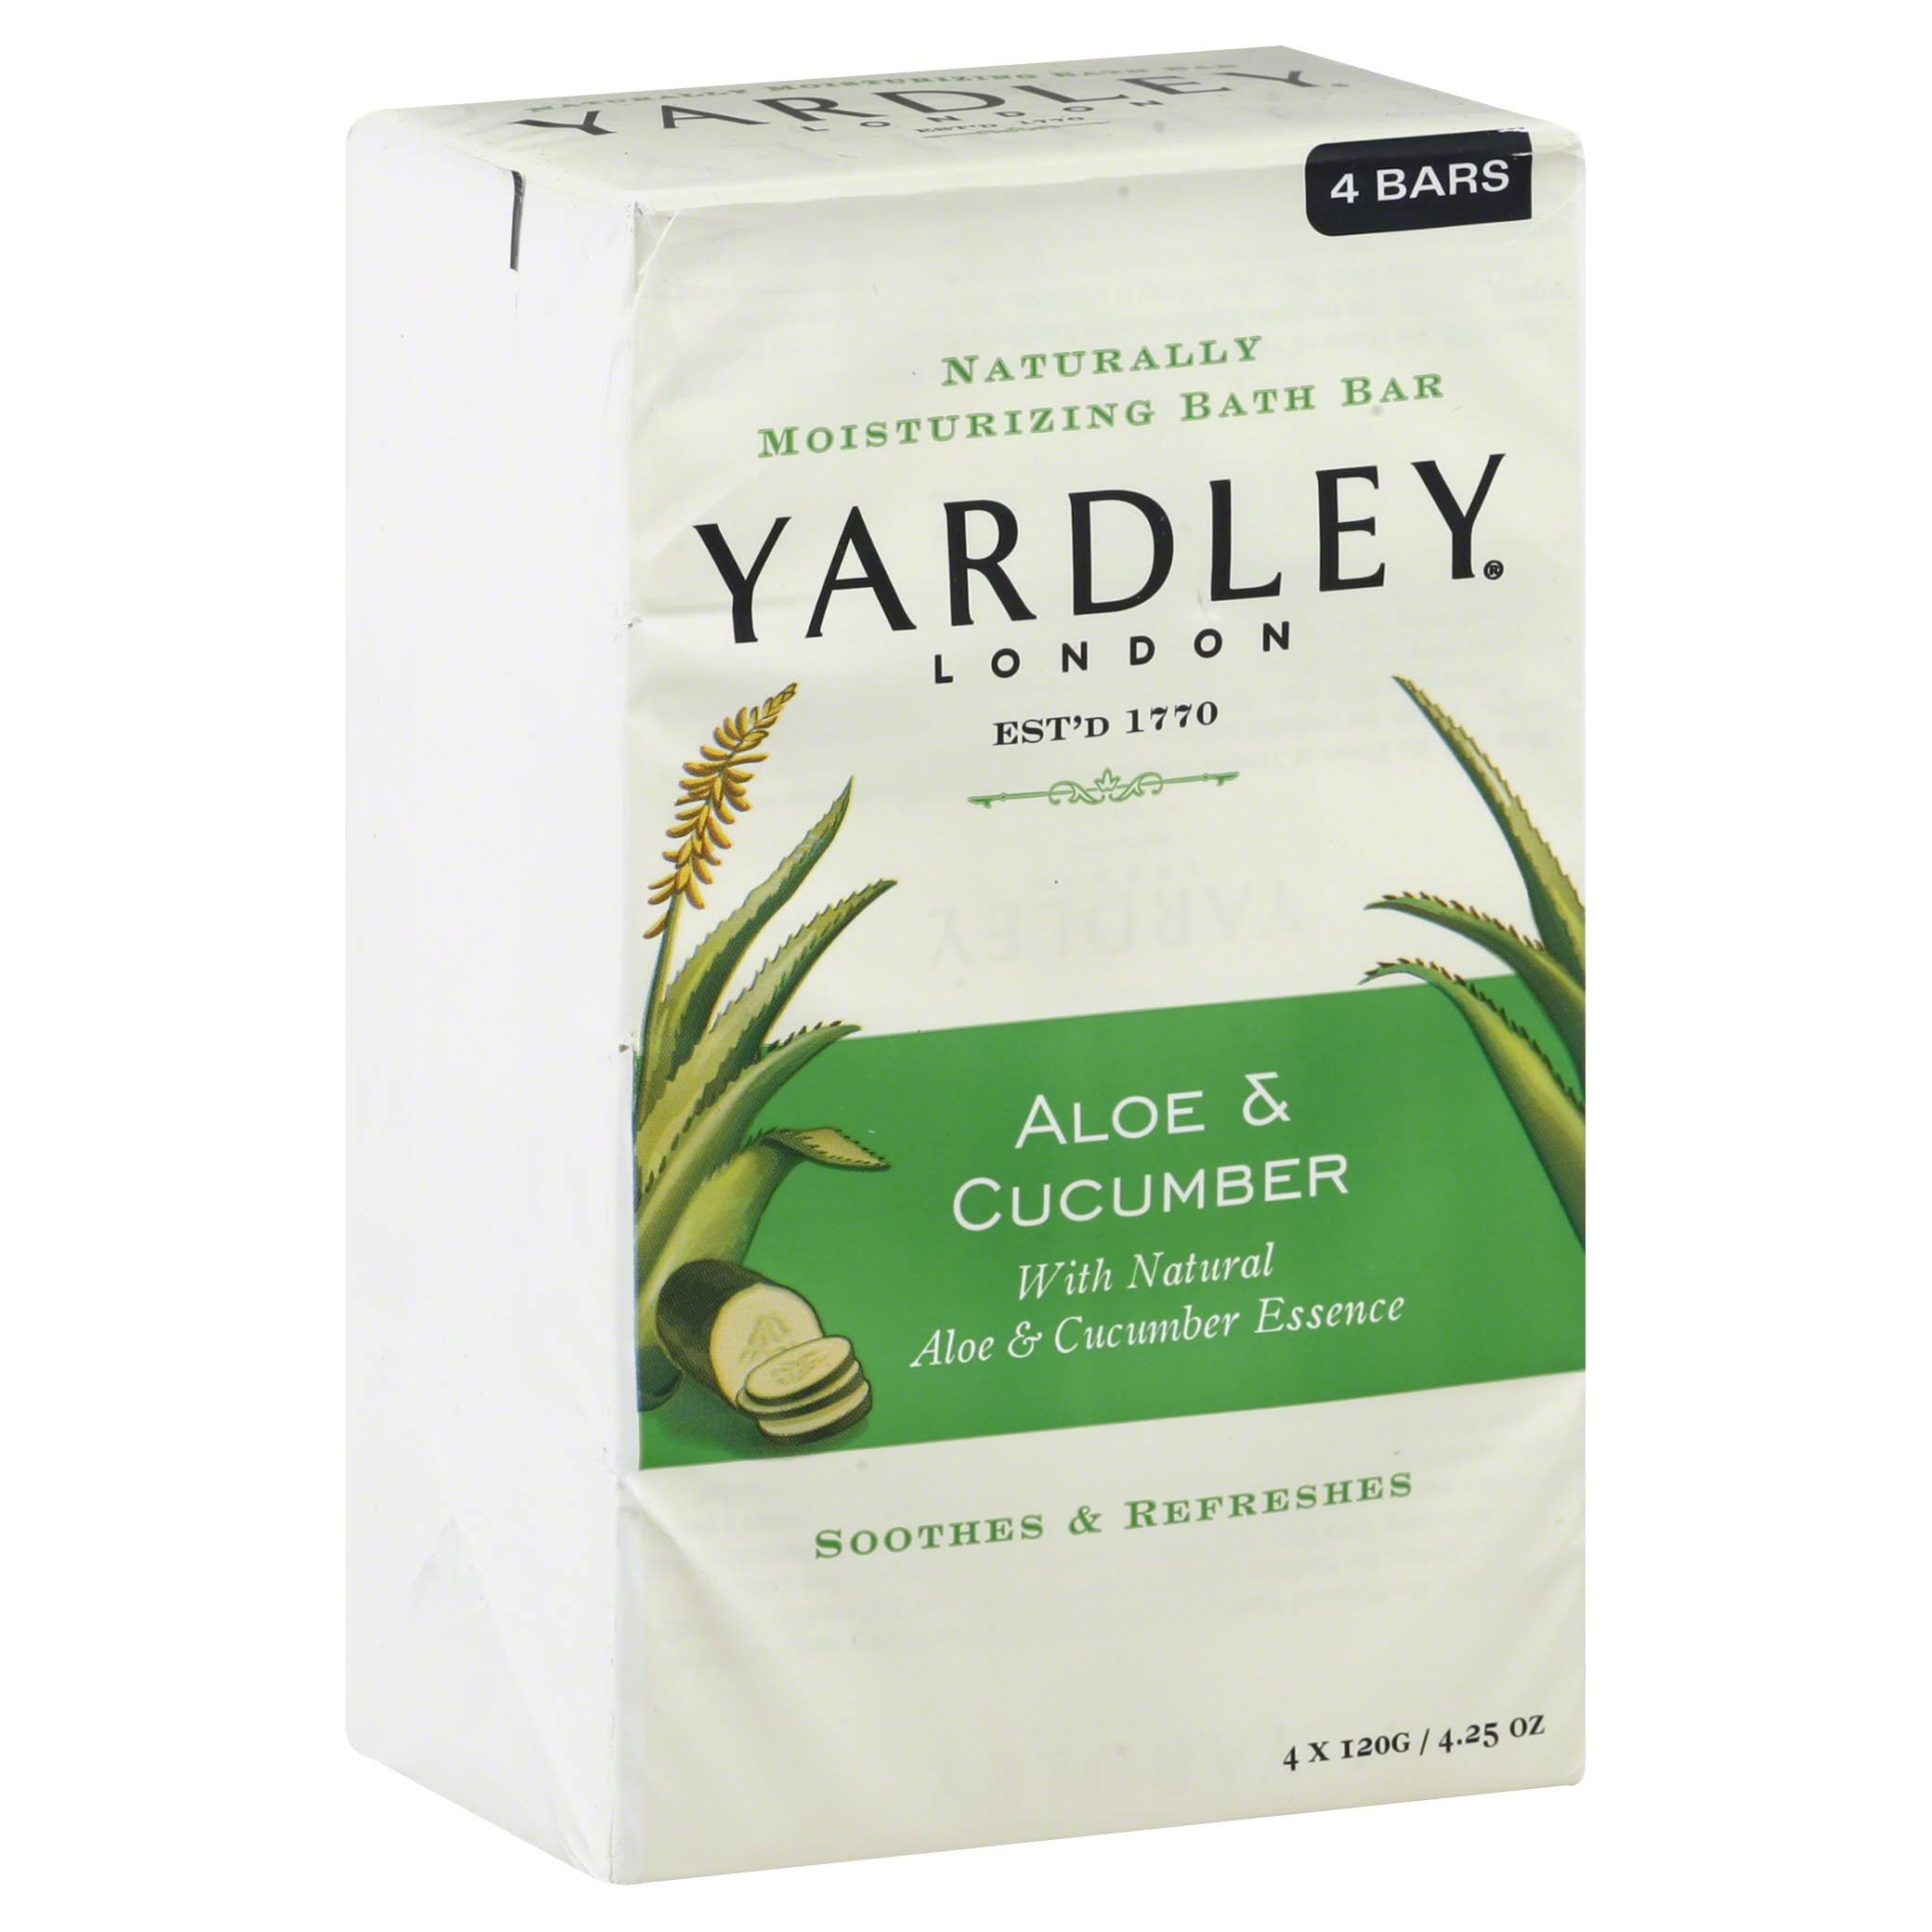 Yardley Of London Moisturizing Soap - Aloe and Avocado, 4 Bars, 480g